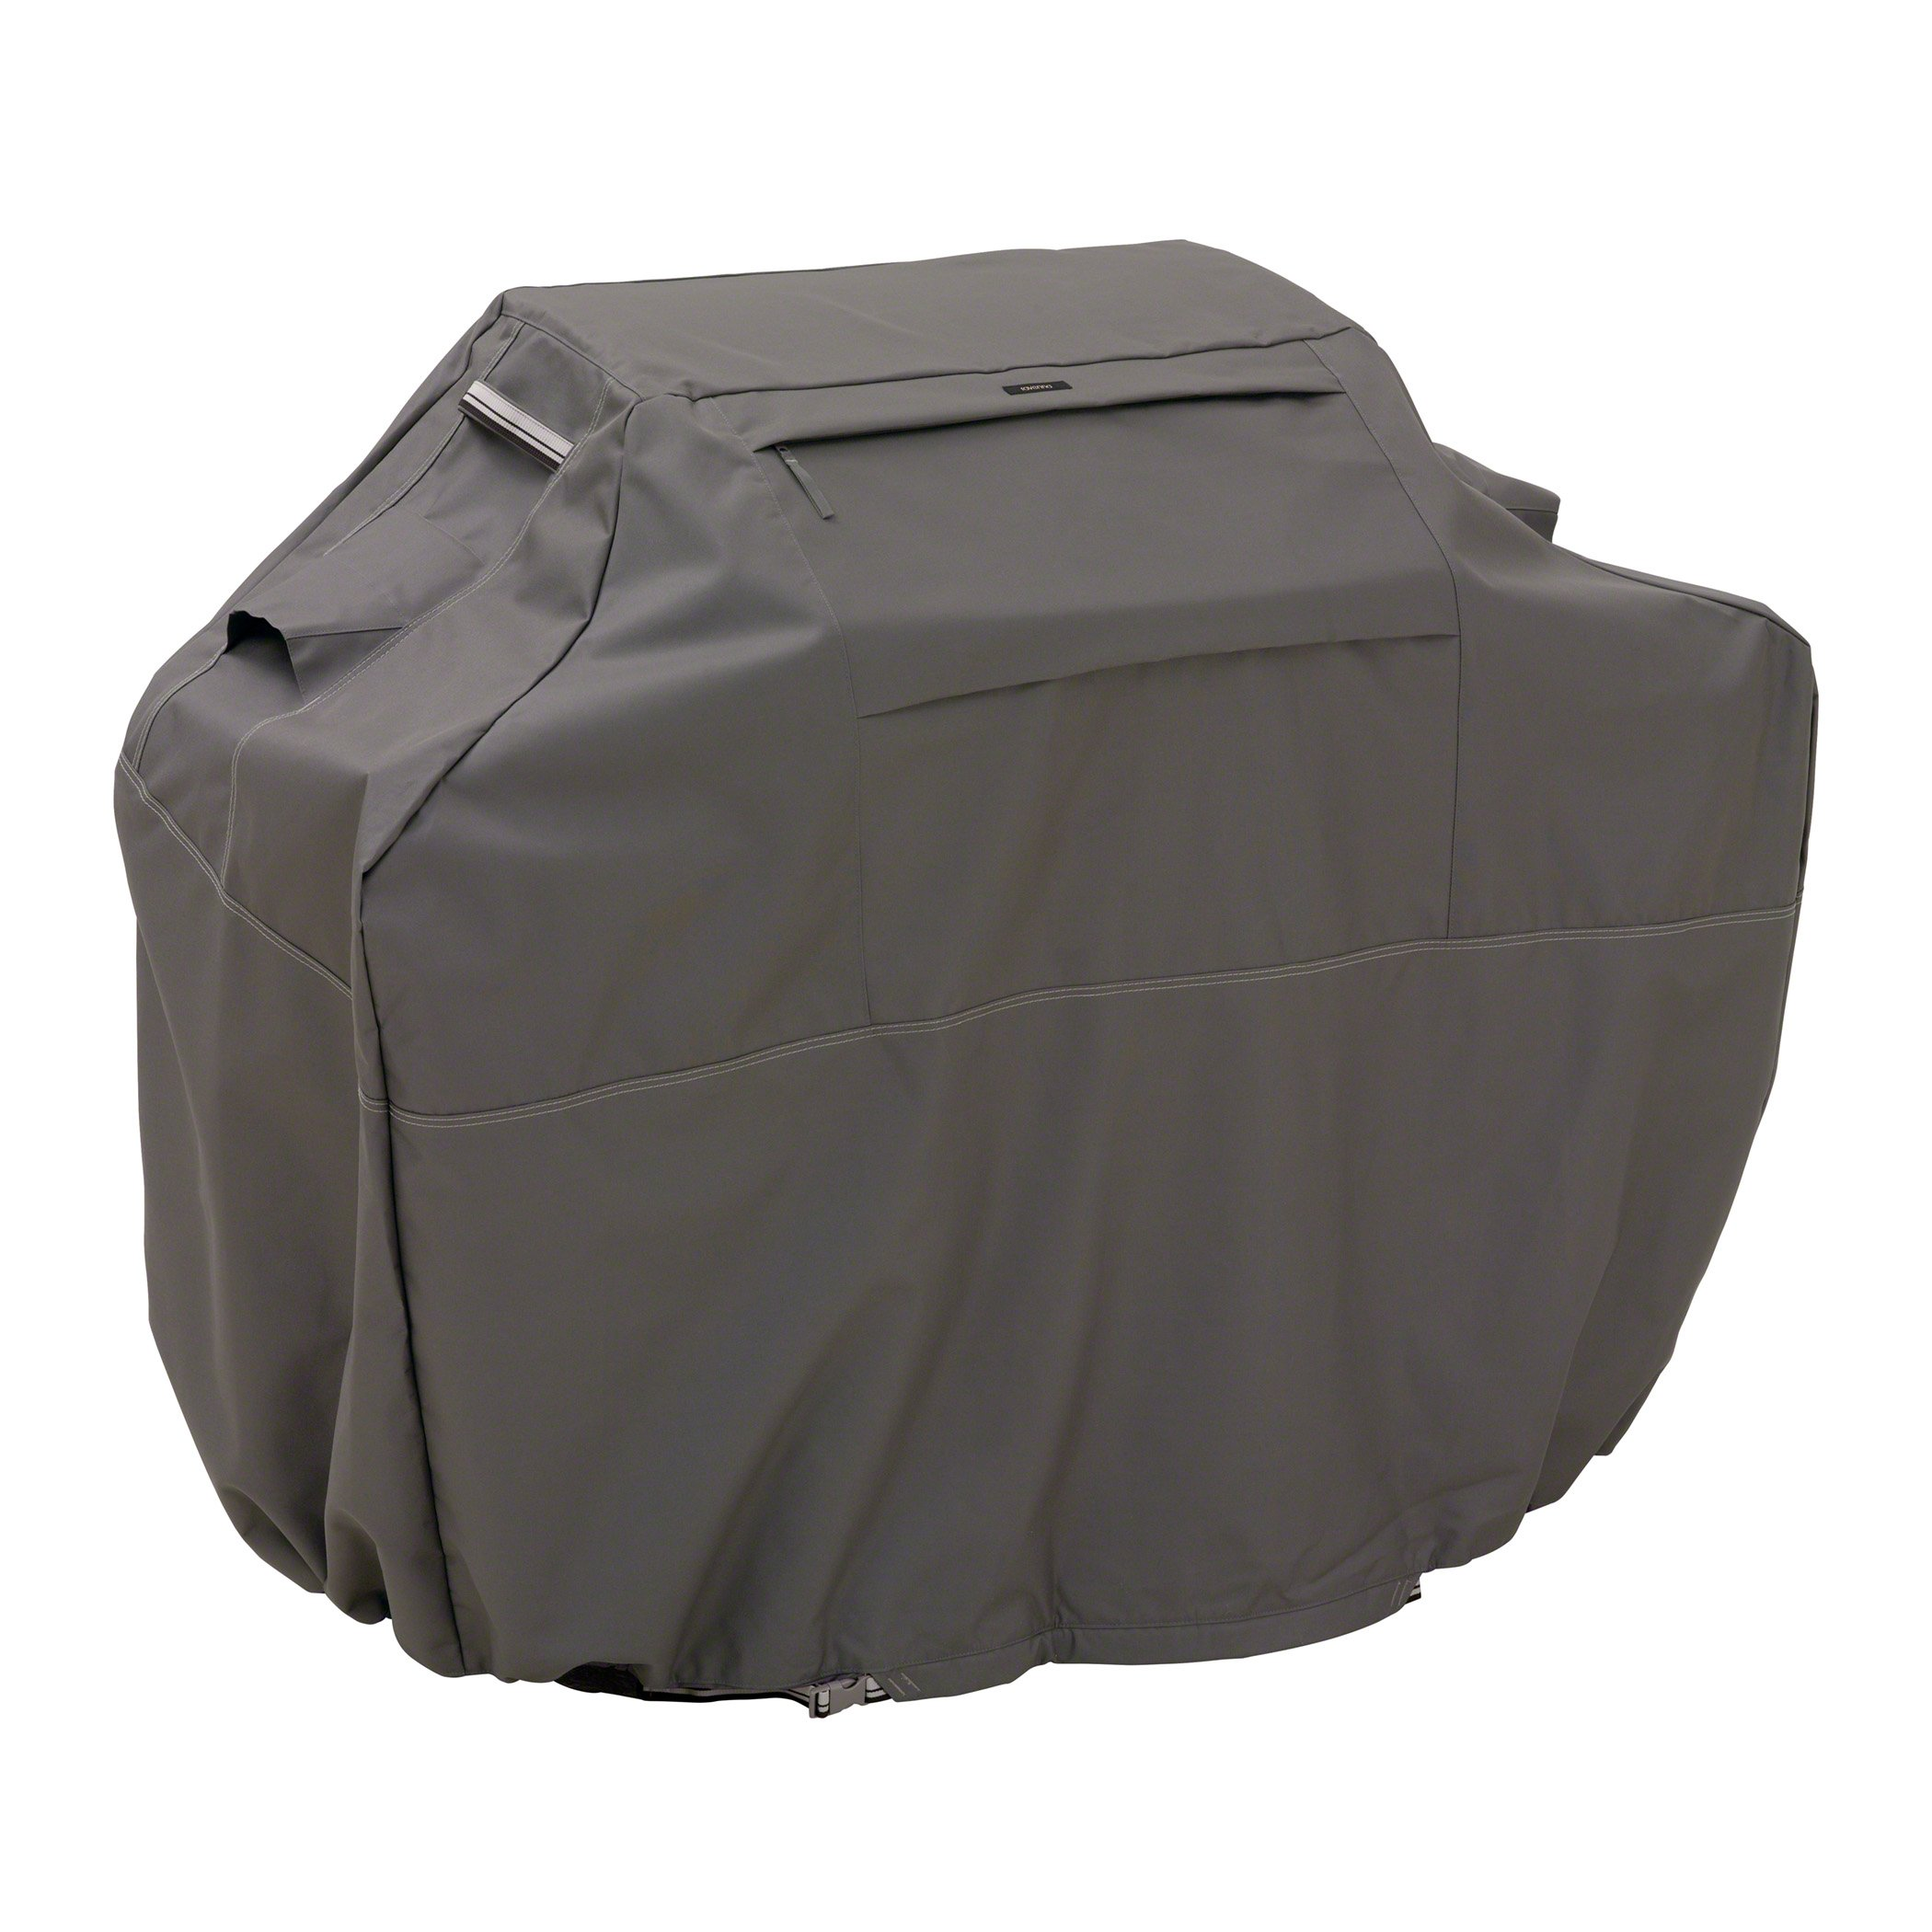 Classic Accessories Ravenna Grill Cover, Large by Classic Accessories